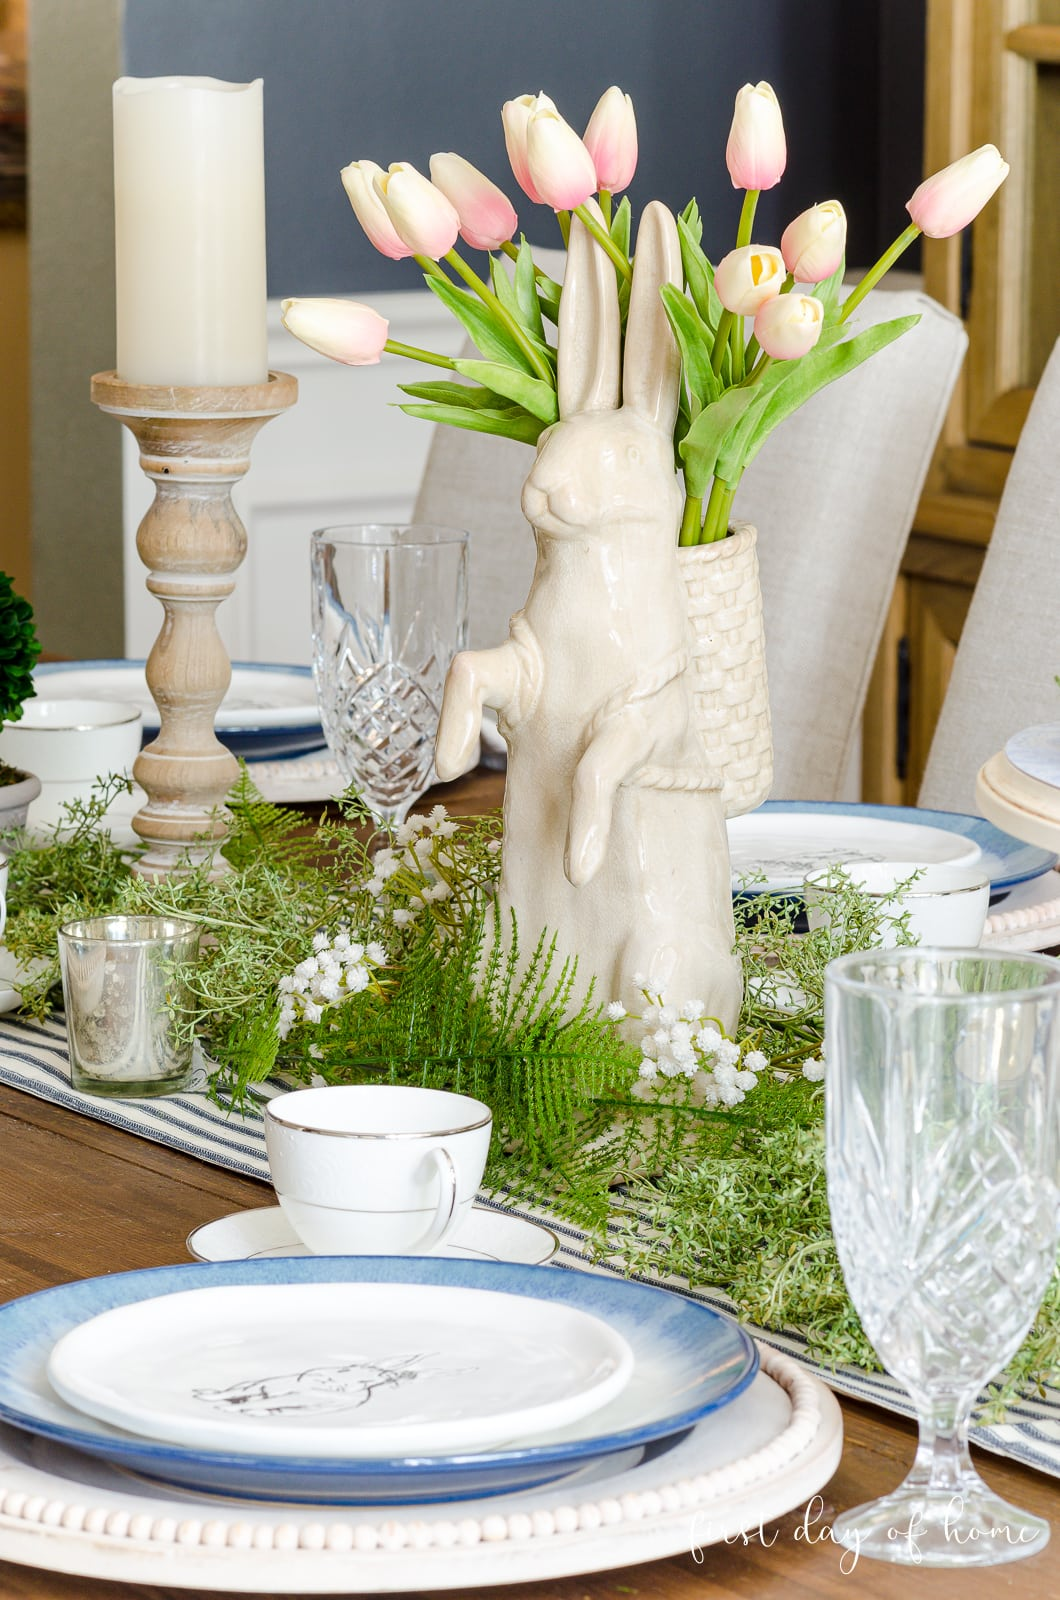 Bunny figuring with tulips on spring tablescape